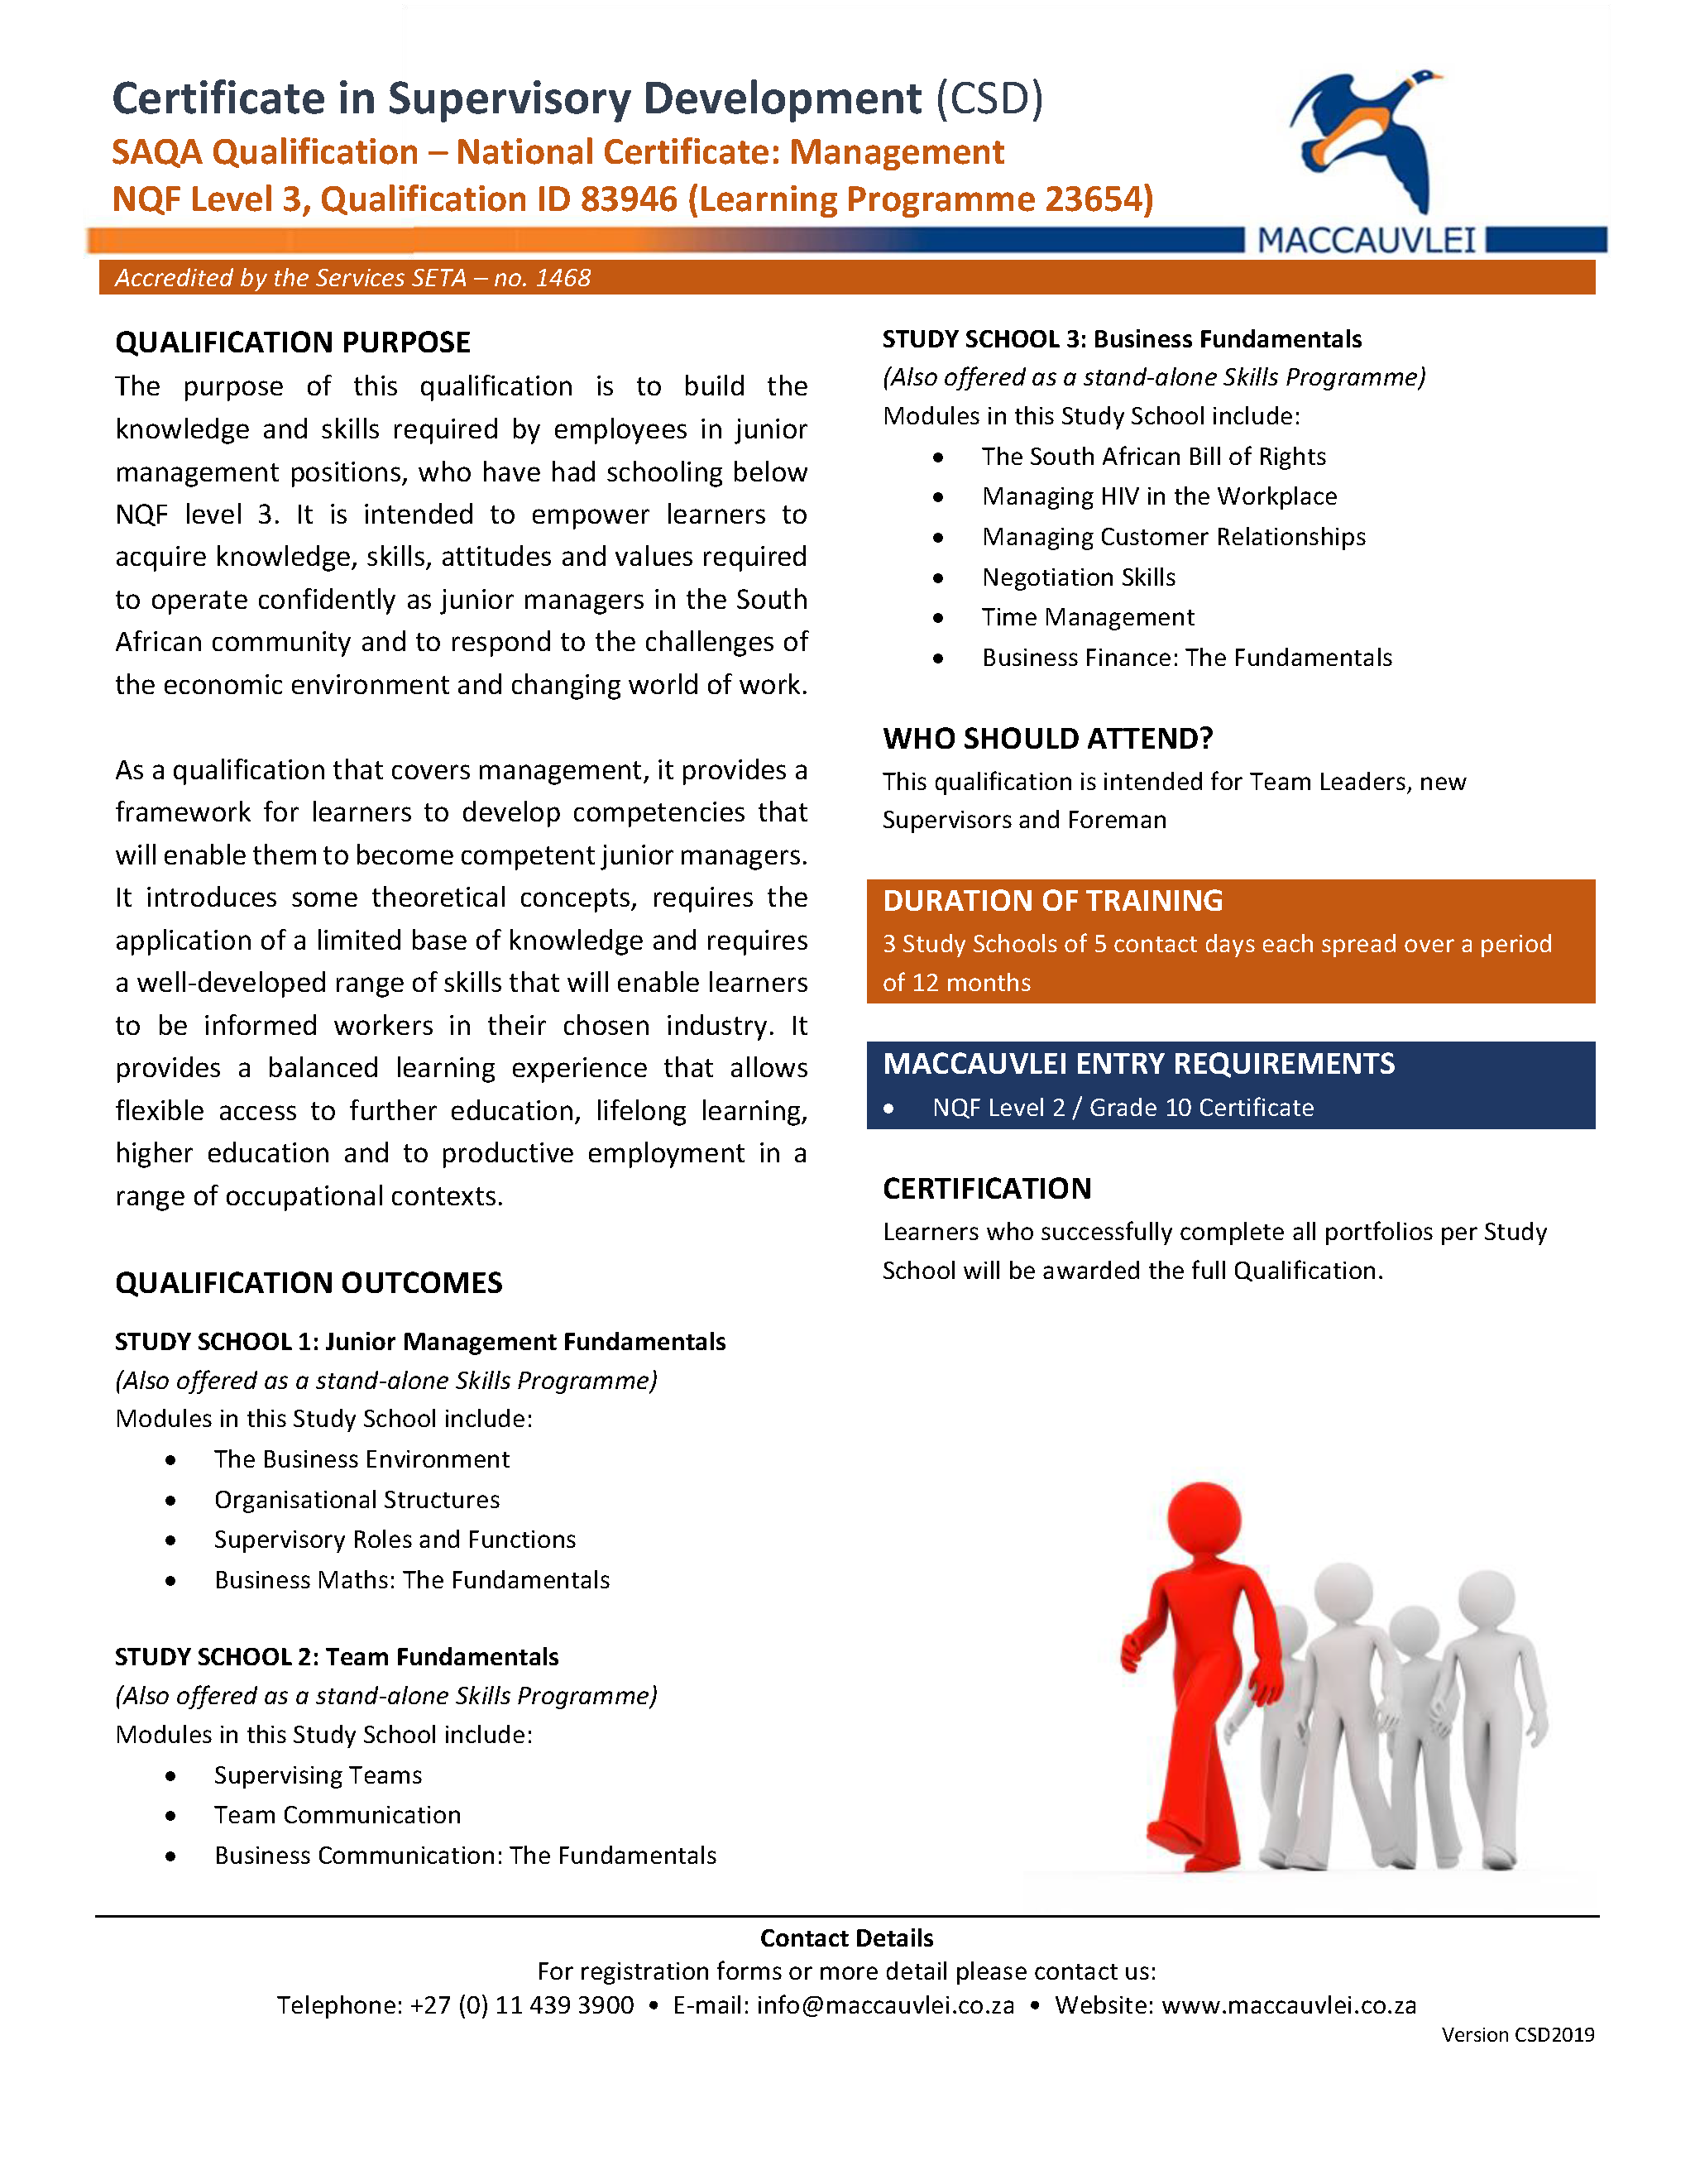 CSD - Certificate in Supervisory Development_Page_1